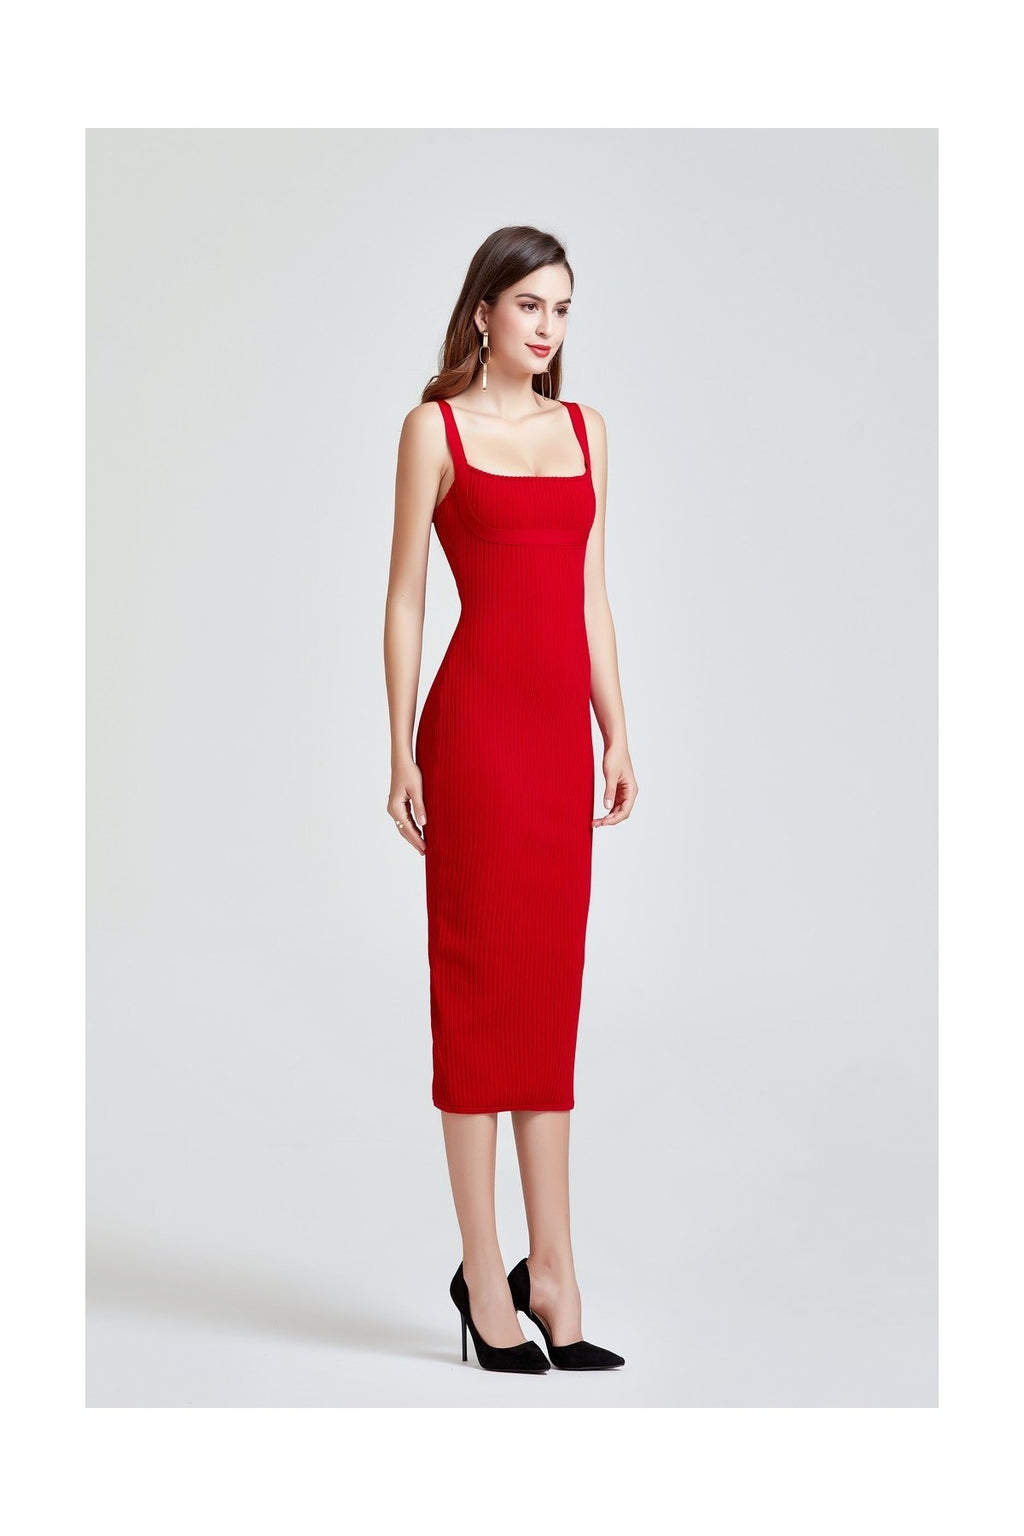 AMELIE RED RIBBED BANDAGE MIDI DRESS